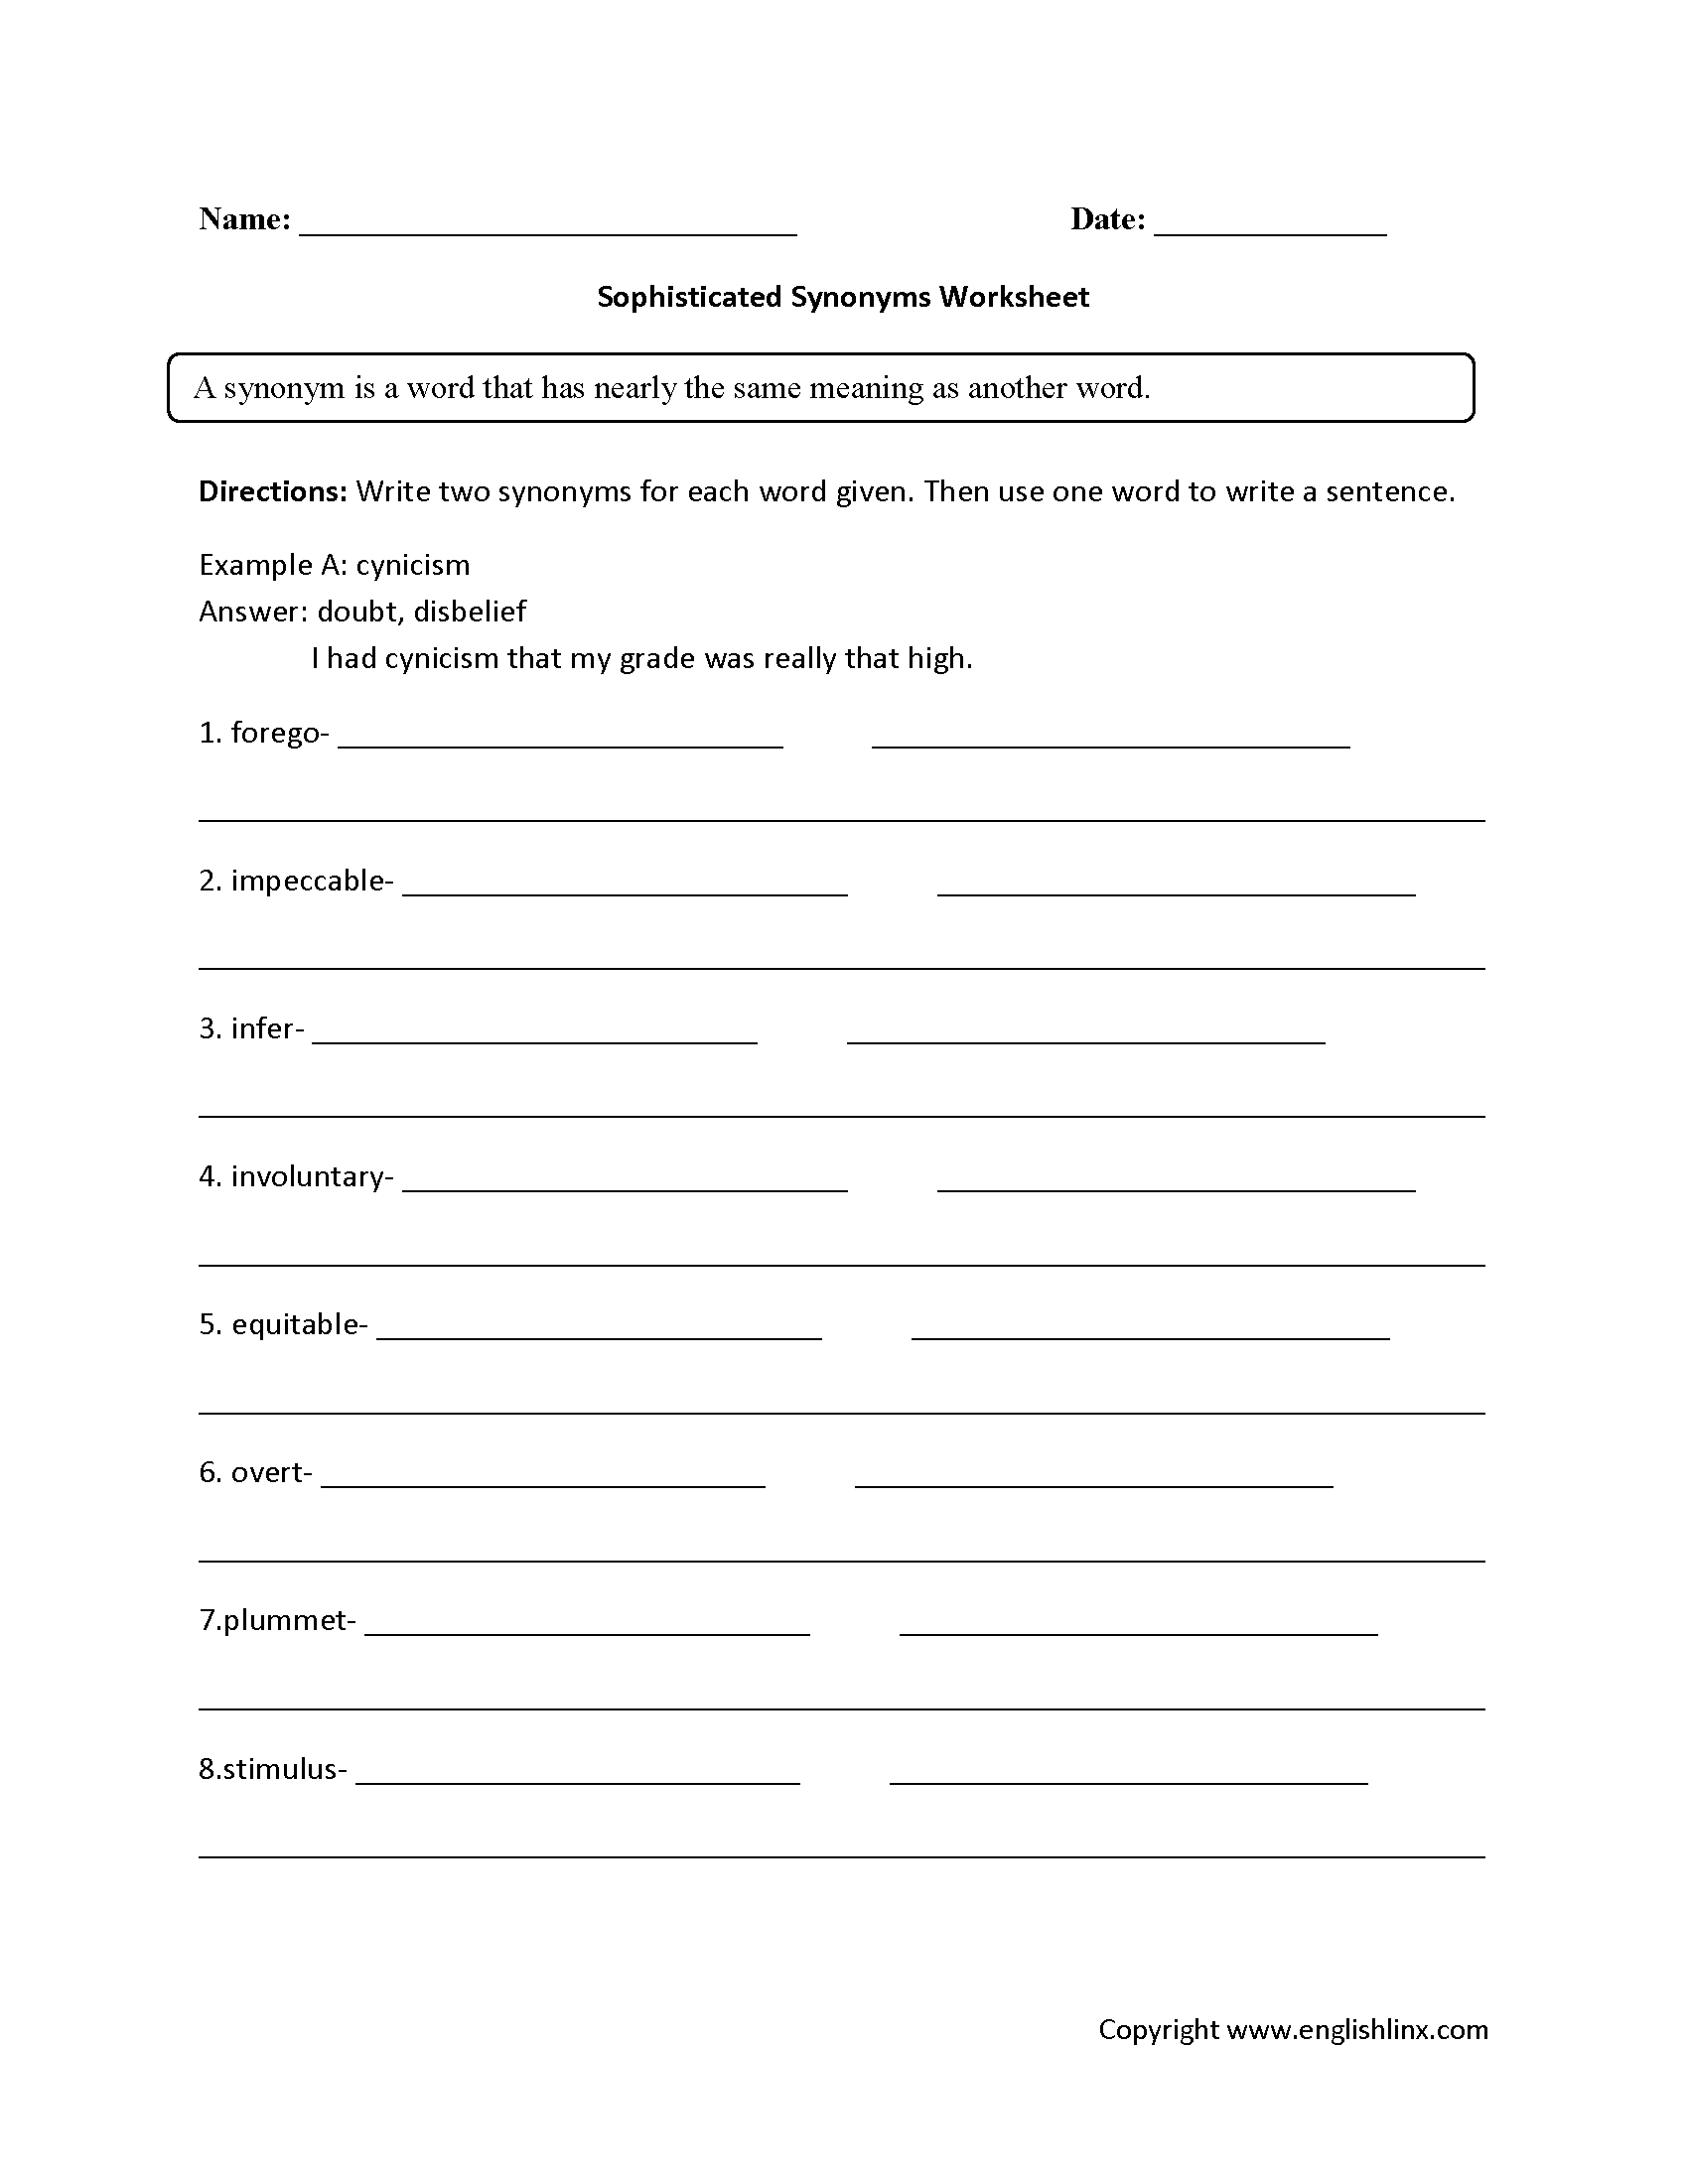 Sophisticated Synonyms Worksheets